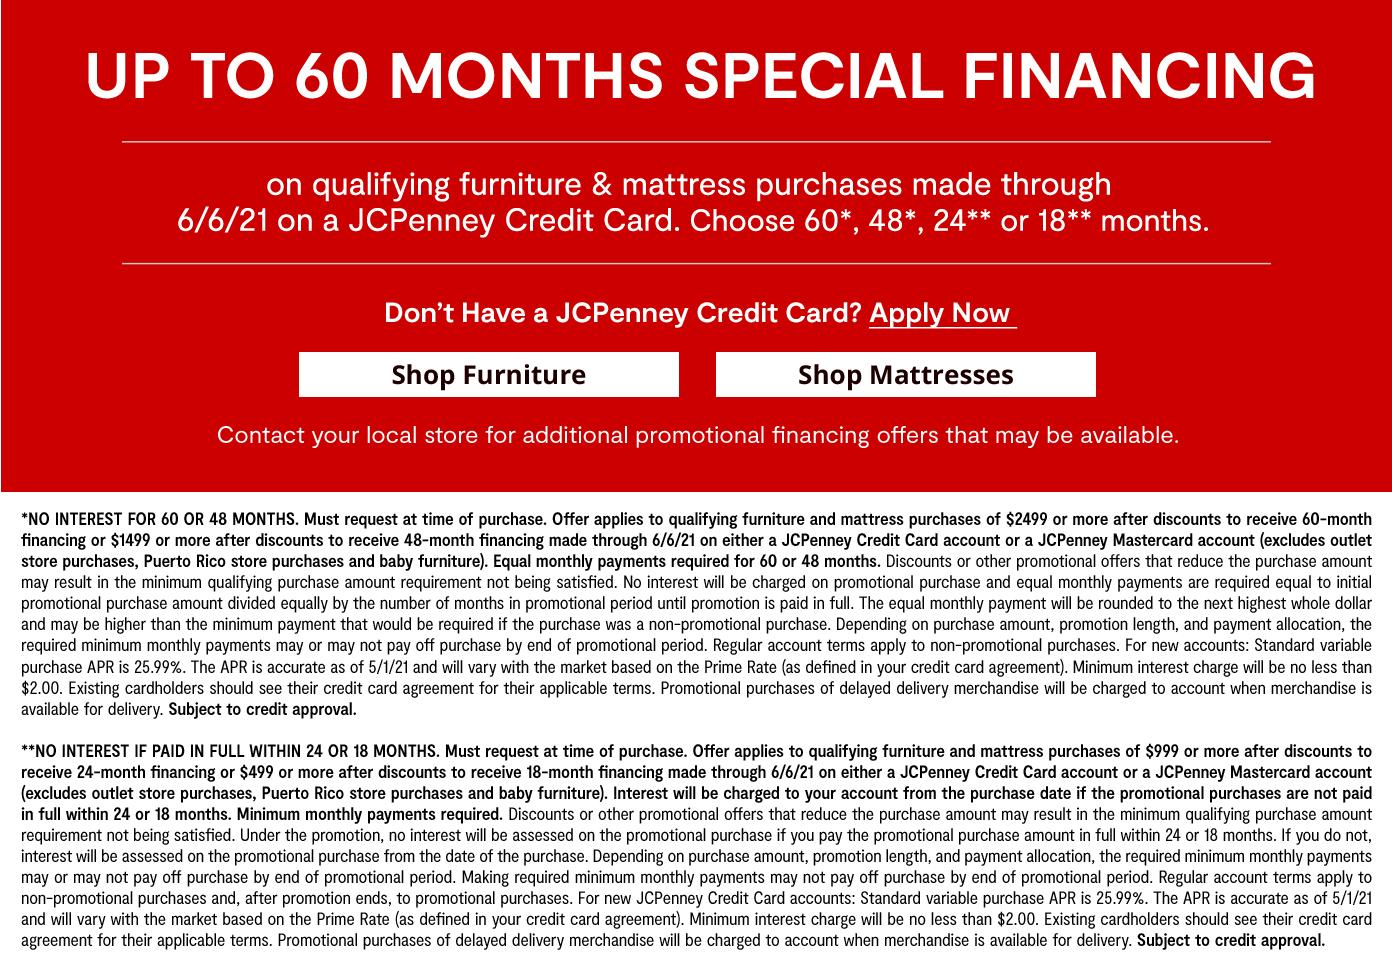 up to 60 months special financing on qualifying furniture & mattress purchases made through  6/6/21 on a JCPenney Credit Card. Choose 60*, 48*, 24** or 18** months. shop furniture & mattress